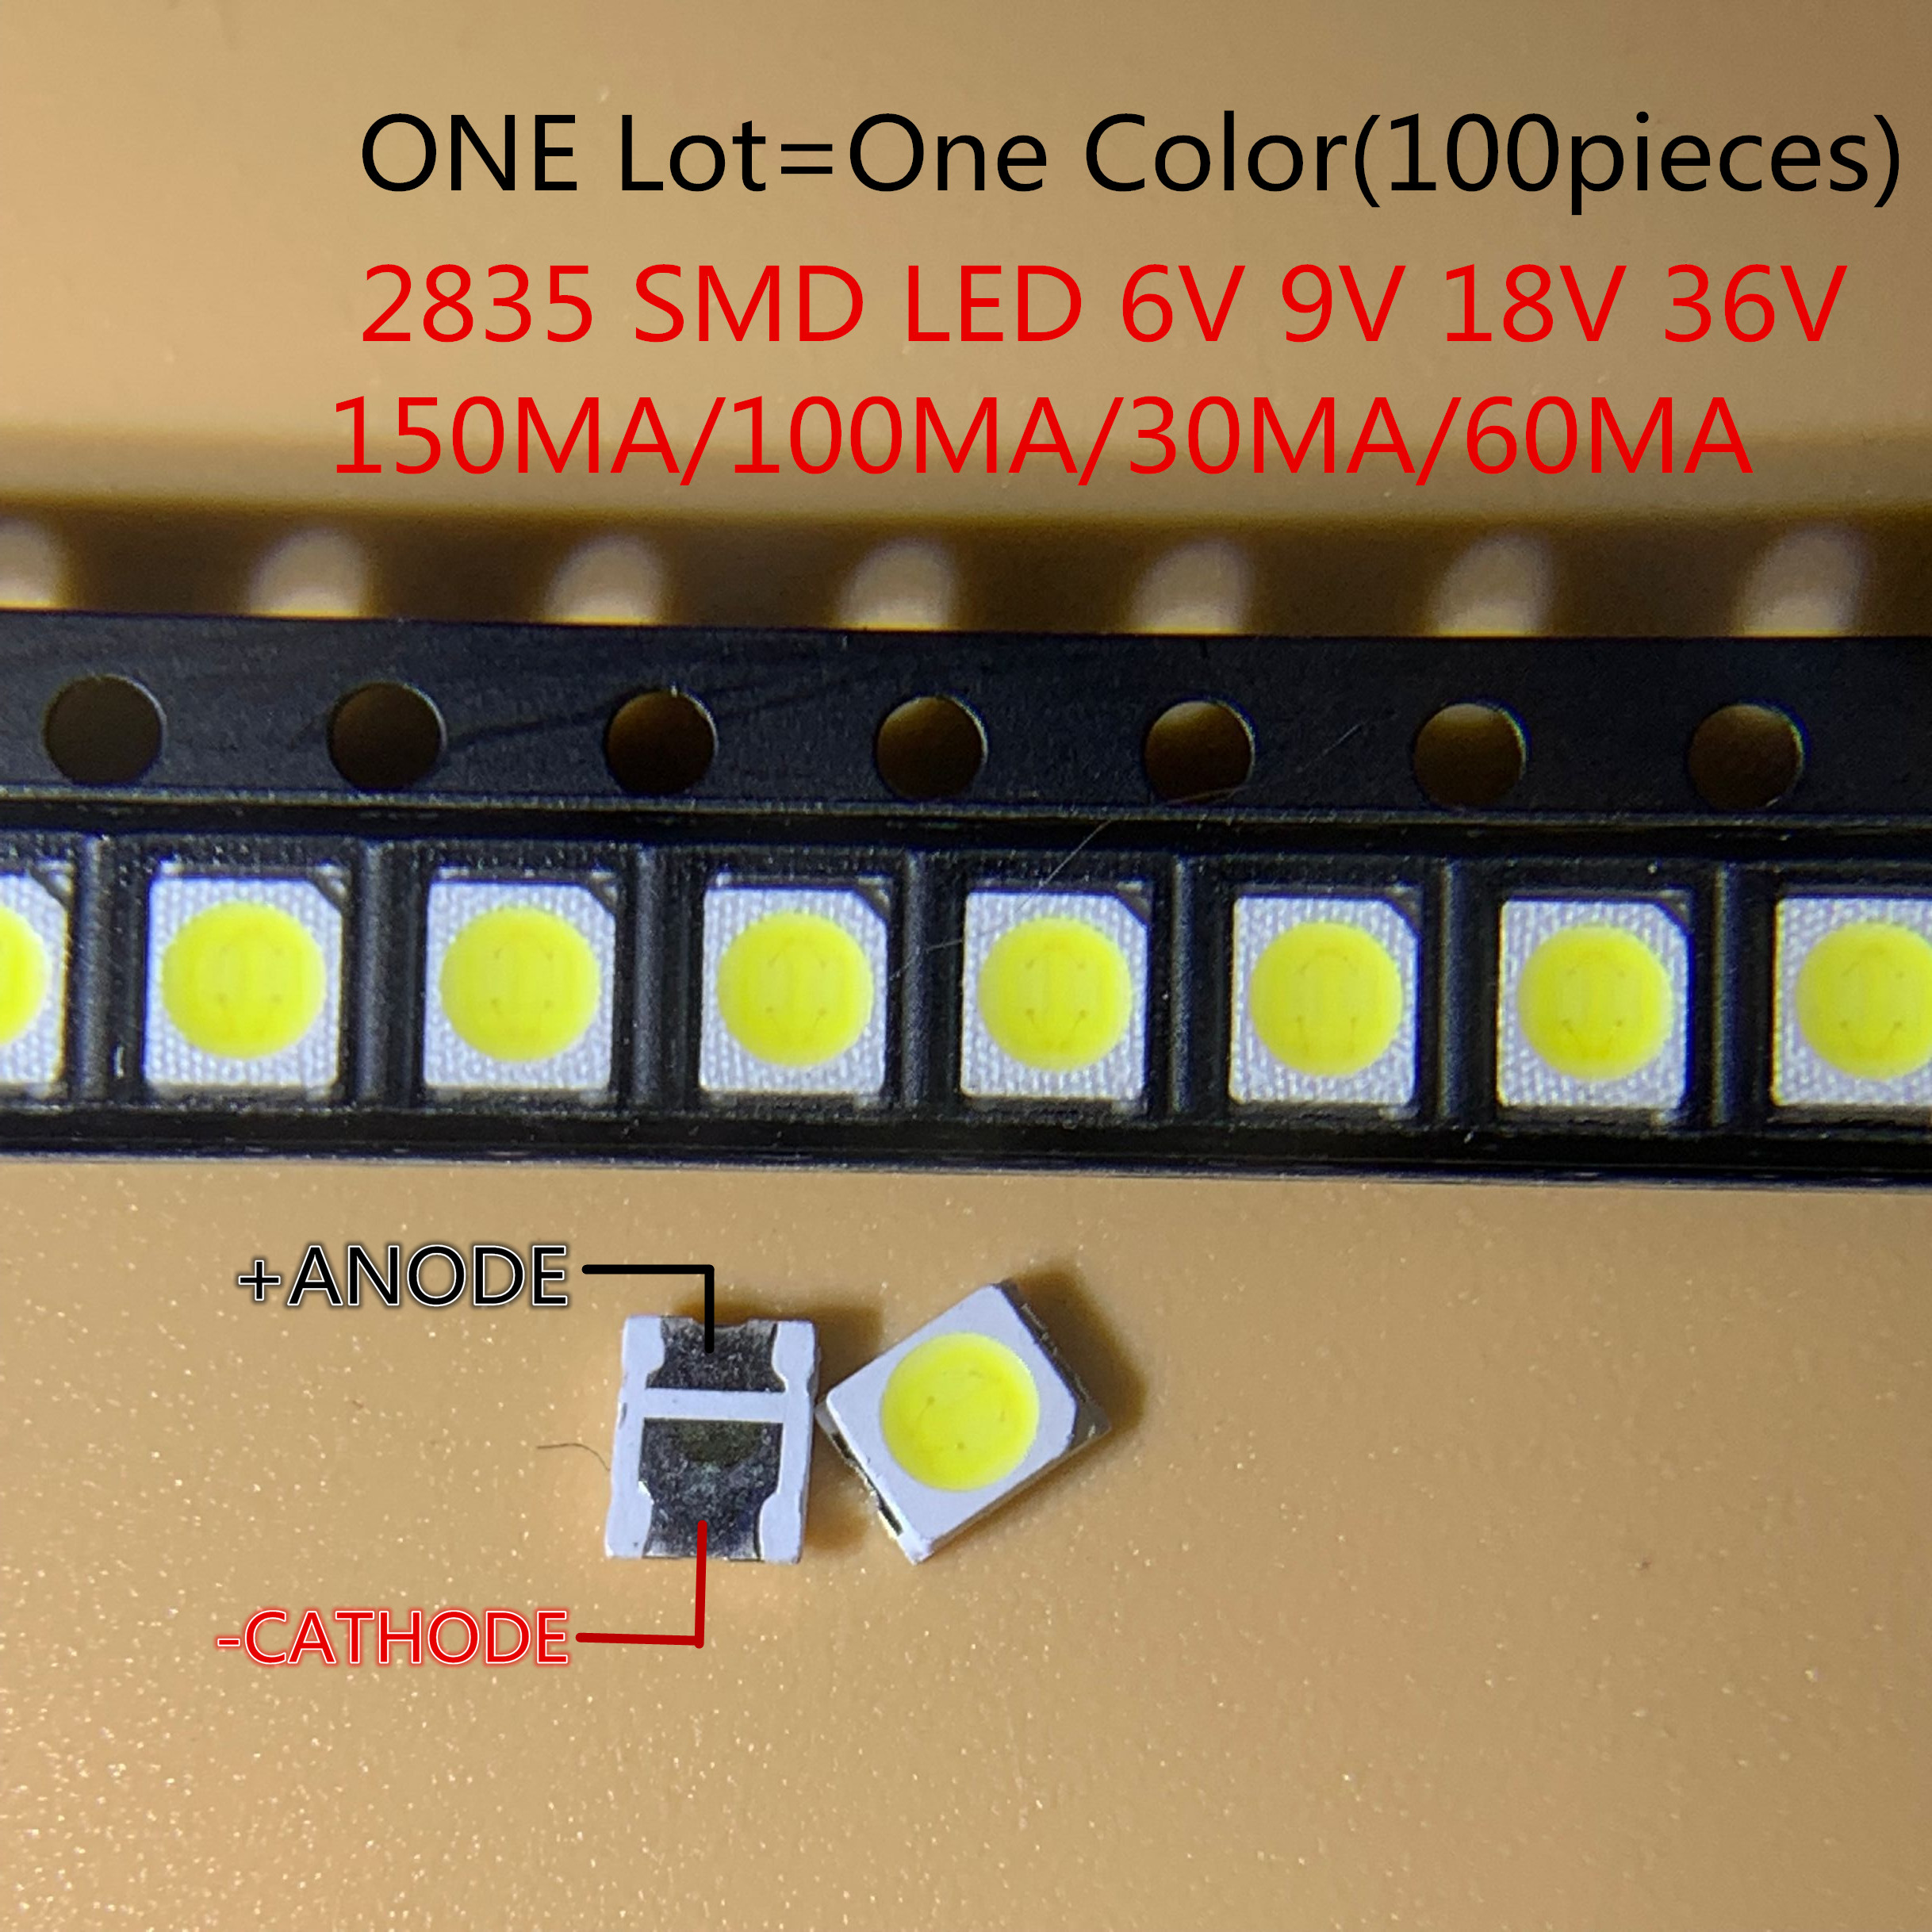 High Brightness <font><b>SMD</b></font> <font><b>LED</b></font> <font><b>2835</b></font> 1W White 100PCS/Lot 3v 6V 9V 18V 36V 150MA/100MA/30MA/60MA/350ma image